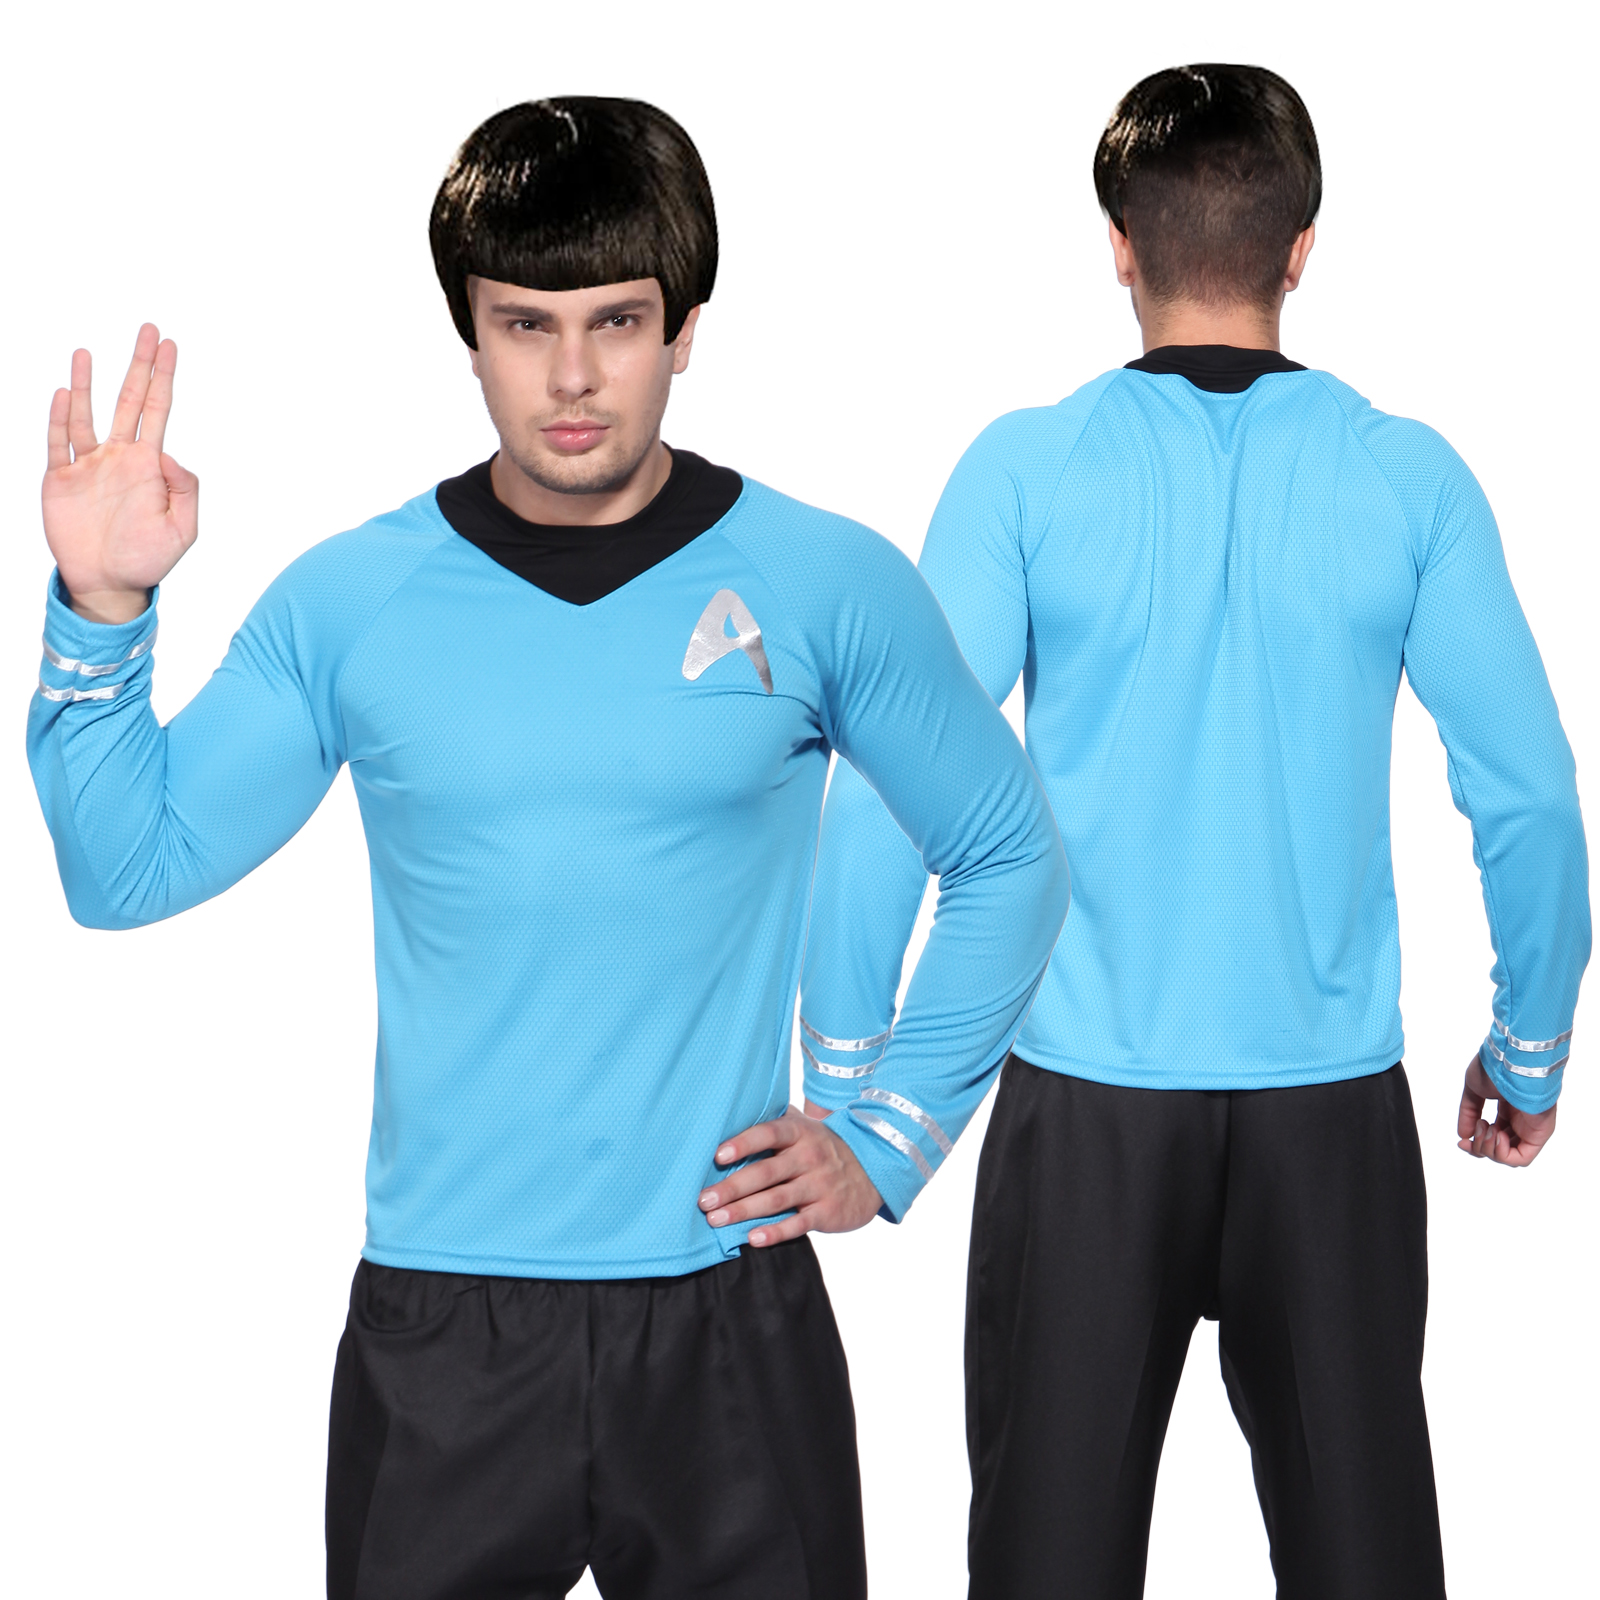 Mens Star Trek T-Shirt Top Blouse Captain Scotty Kirk Spock Sci Fi Fancy Dress | eBay  sc 1 st  eBay & Mens Star Trek T-Shirt Top Blouse Captain Scotty Kirk Spock Sci Fi ...